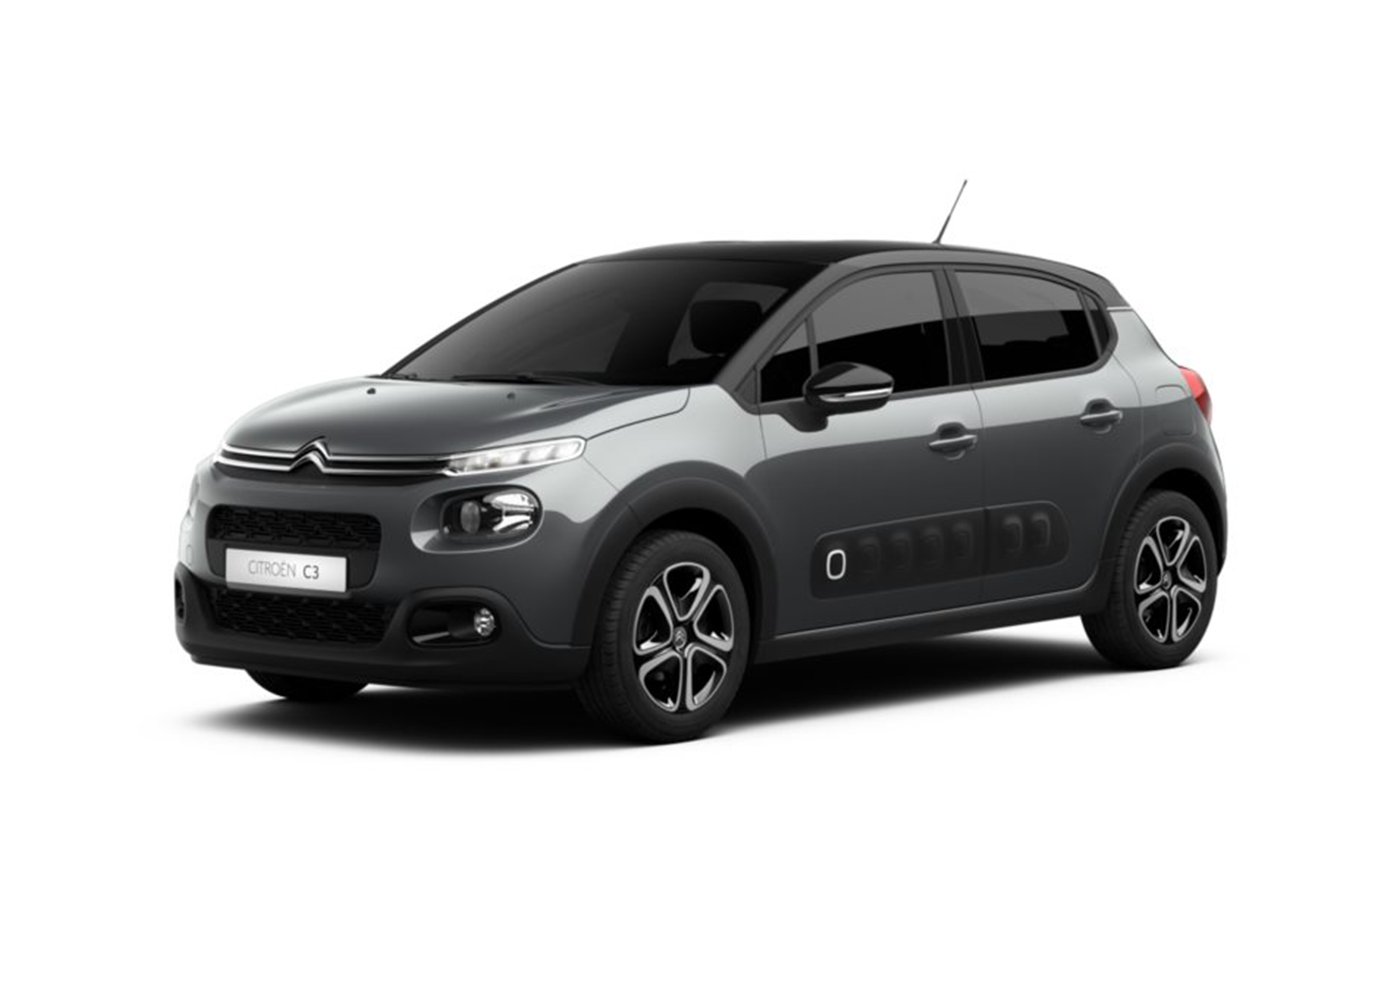 citroen c3 puretech 110 s s eat6 shine grigio platinum km0 a soli 16050 su miacar xs0t4. Black Bedroom Furniture Sets. Home Design Ideas